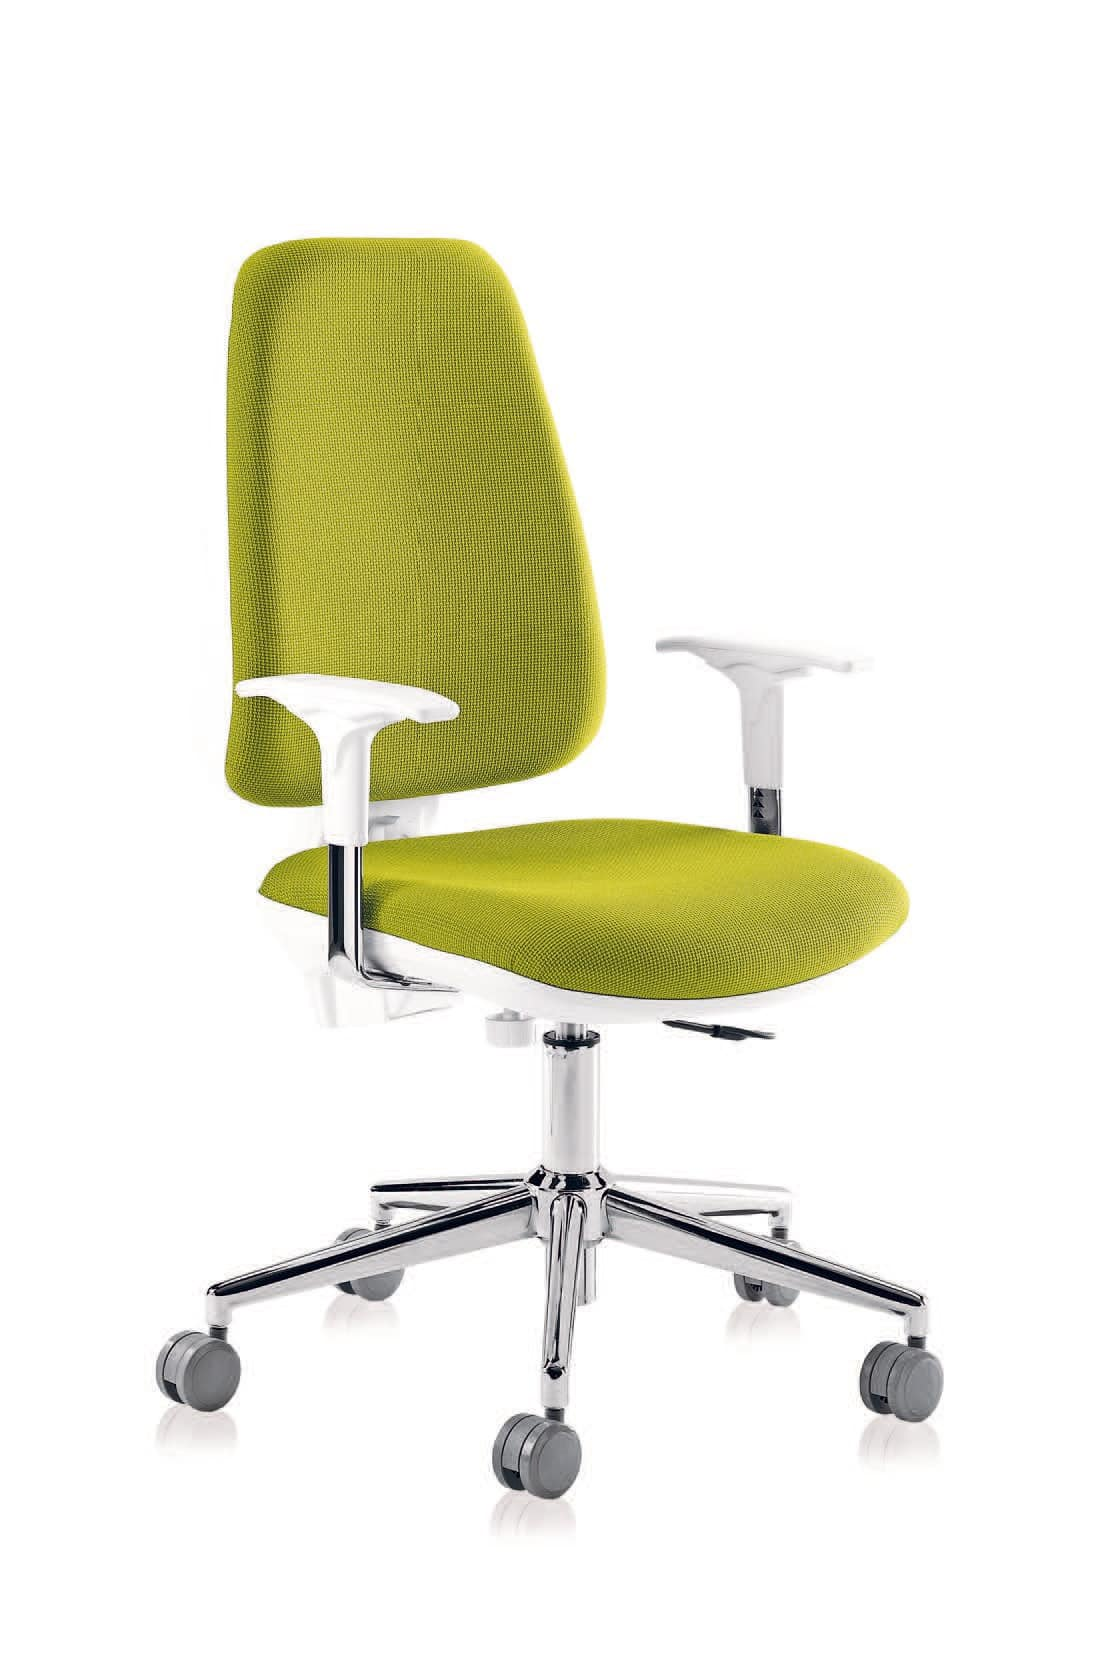 UF 490, Ergonomic office chair, with gas lift